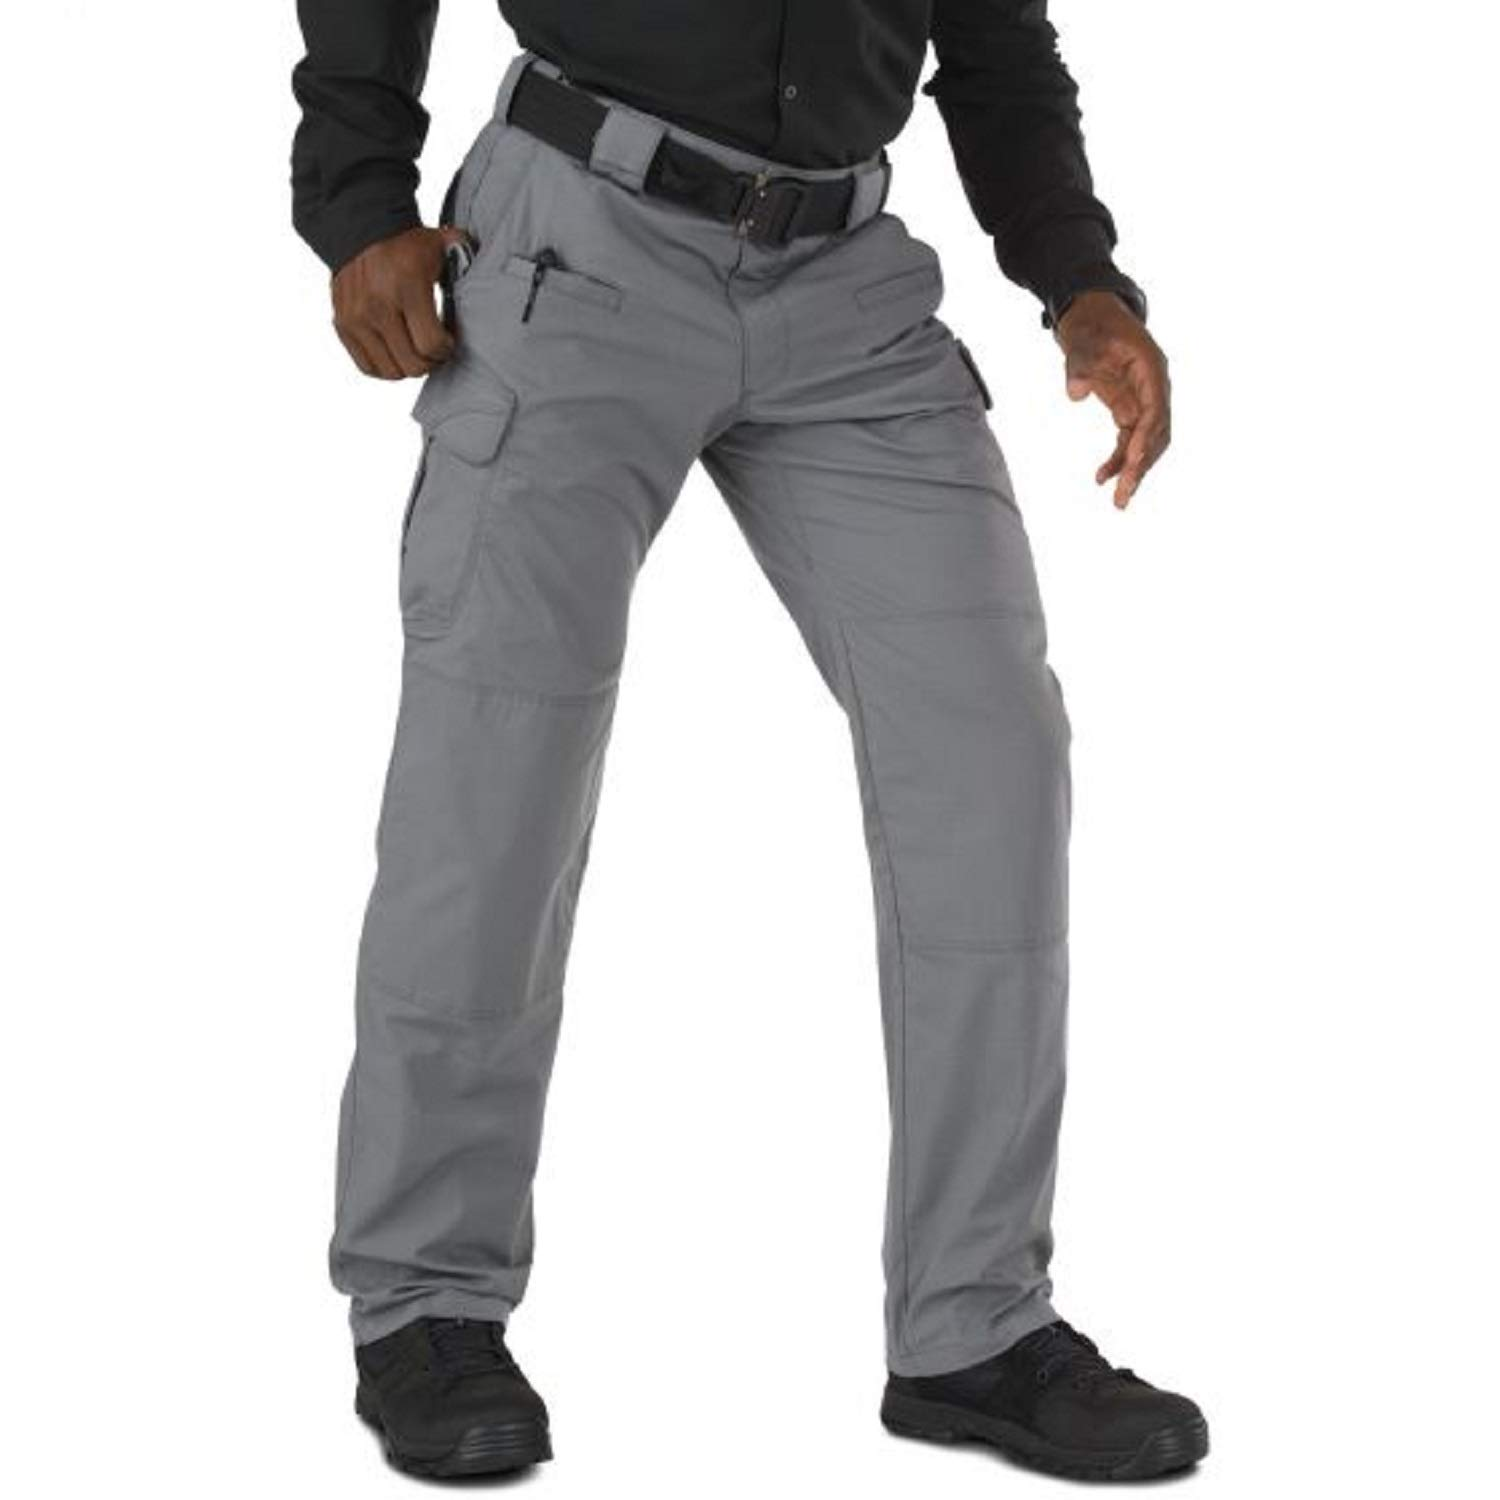 5.11 Tactical Stryke Pant With Flex-Tac TM,36W-32L,Storm by 5.11